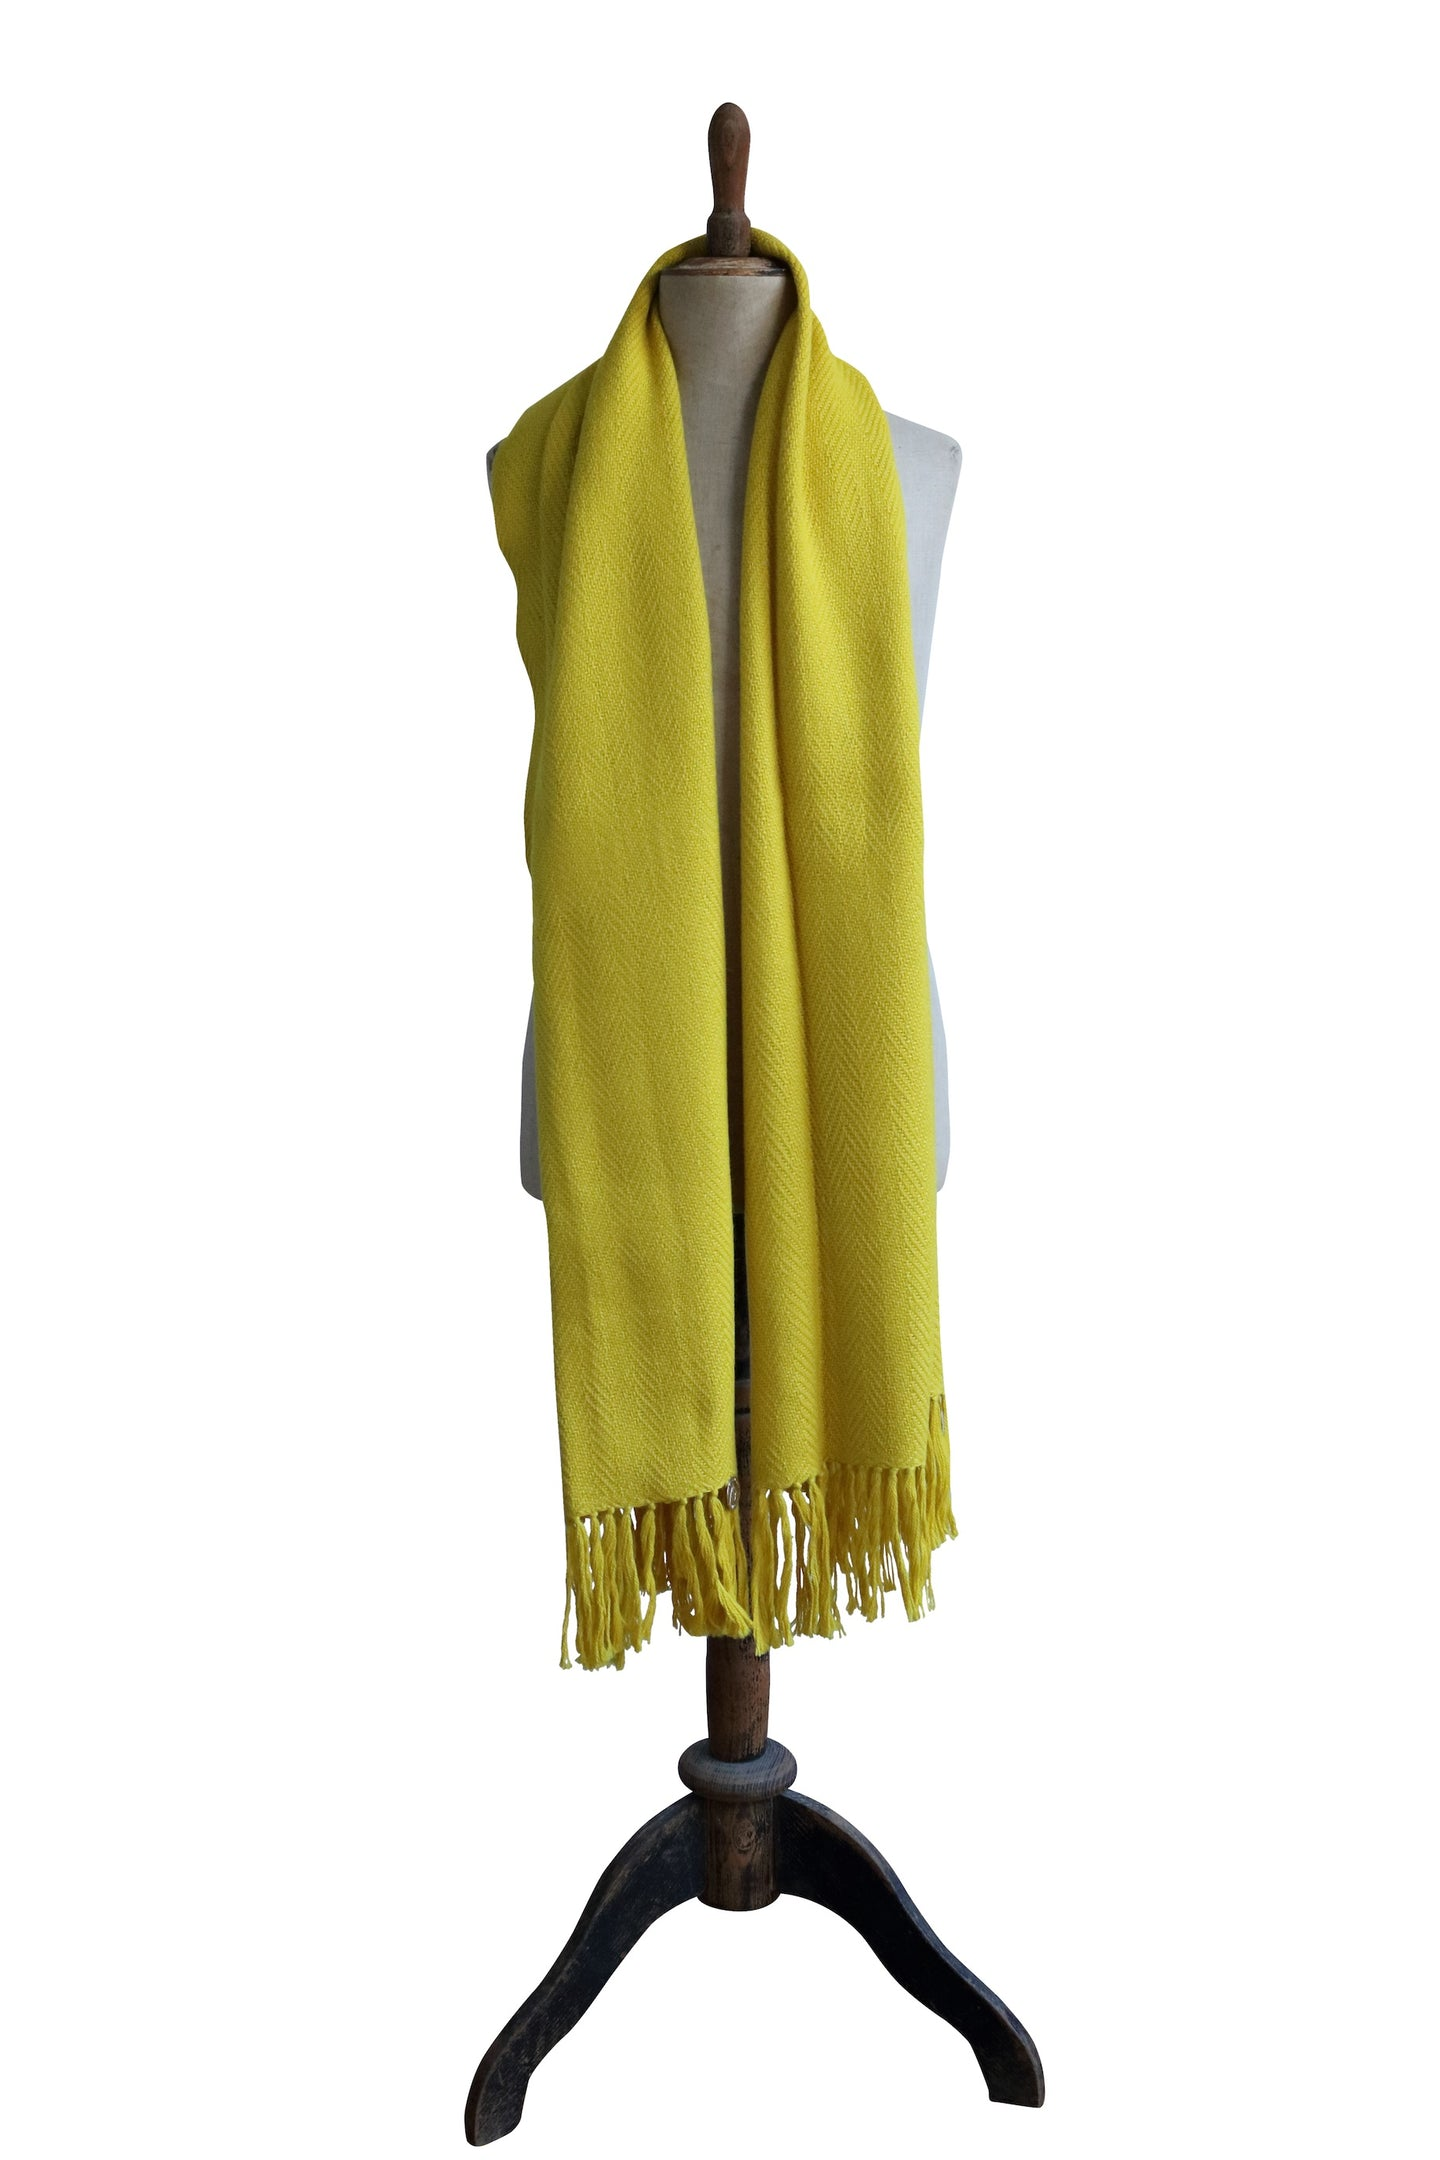 Medium yellow scarf